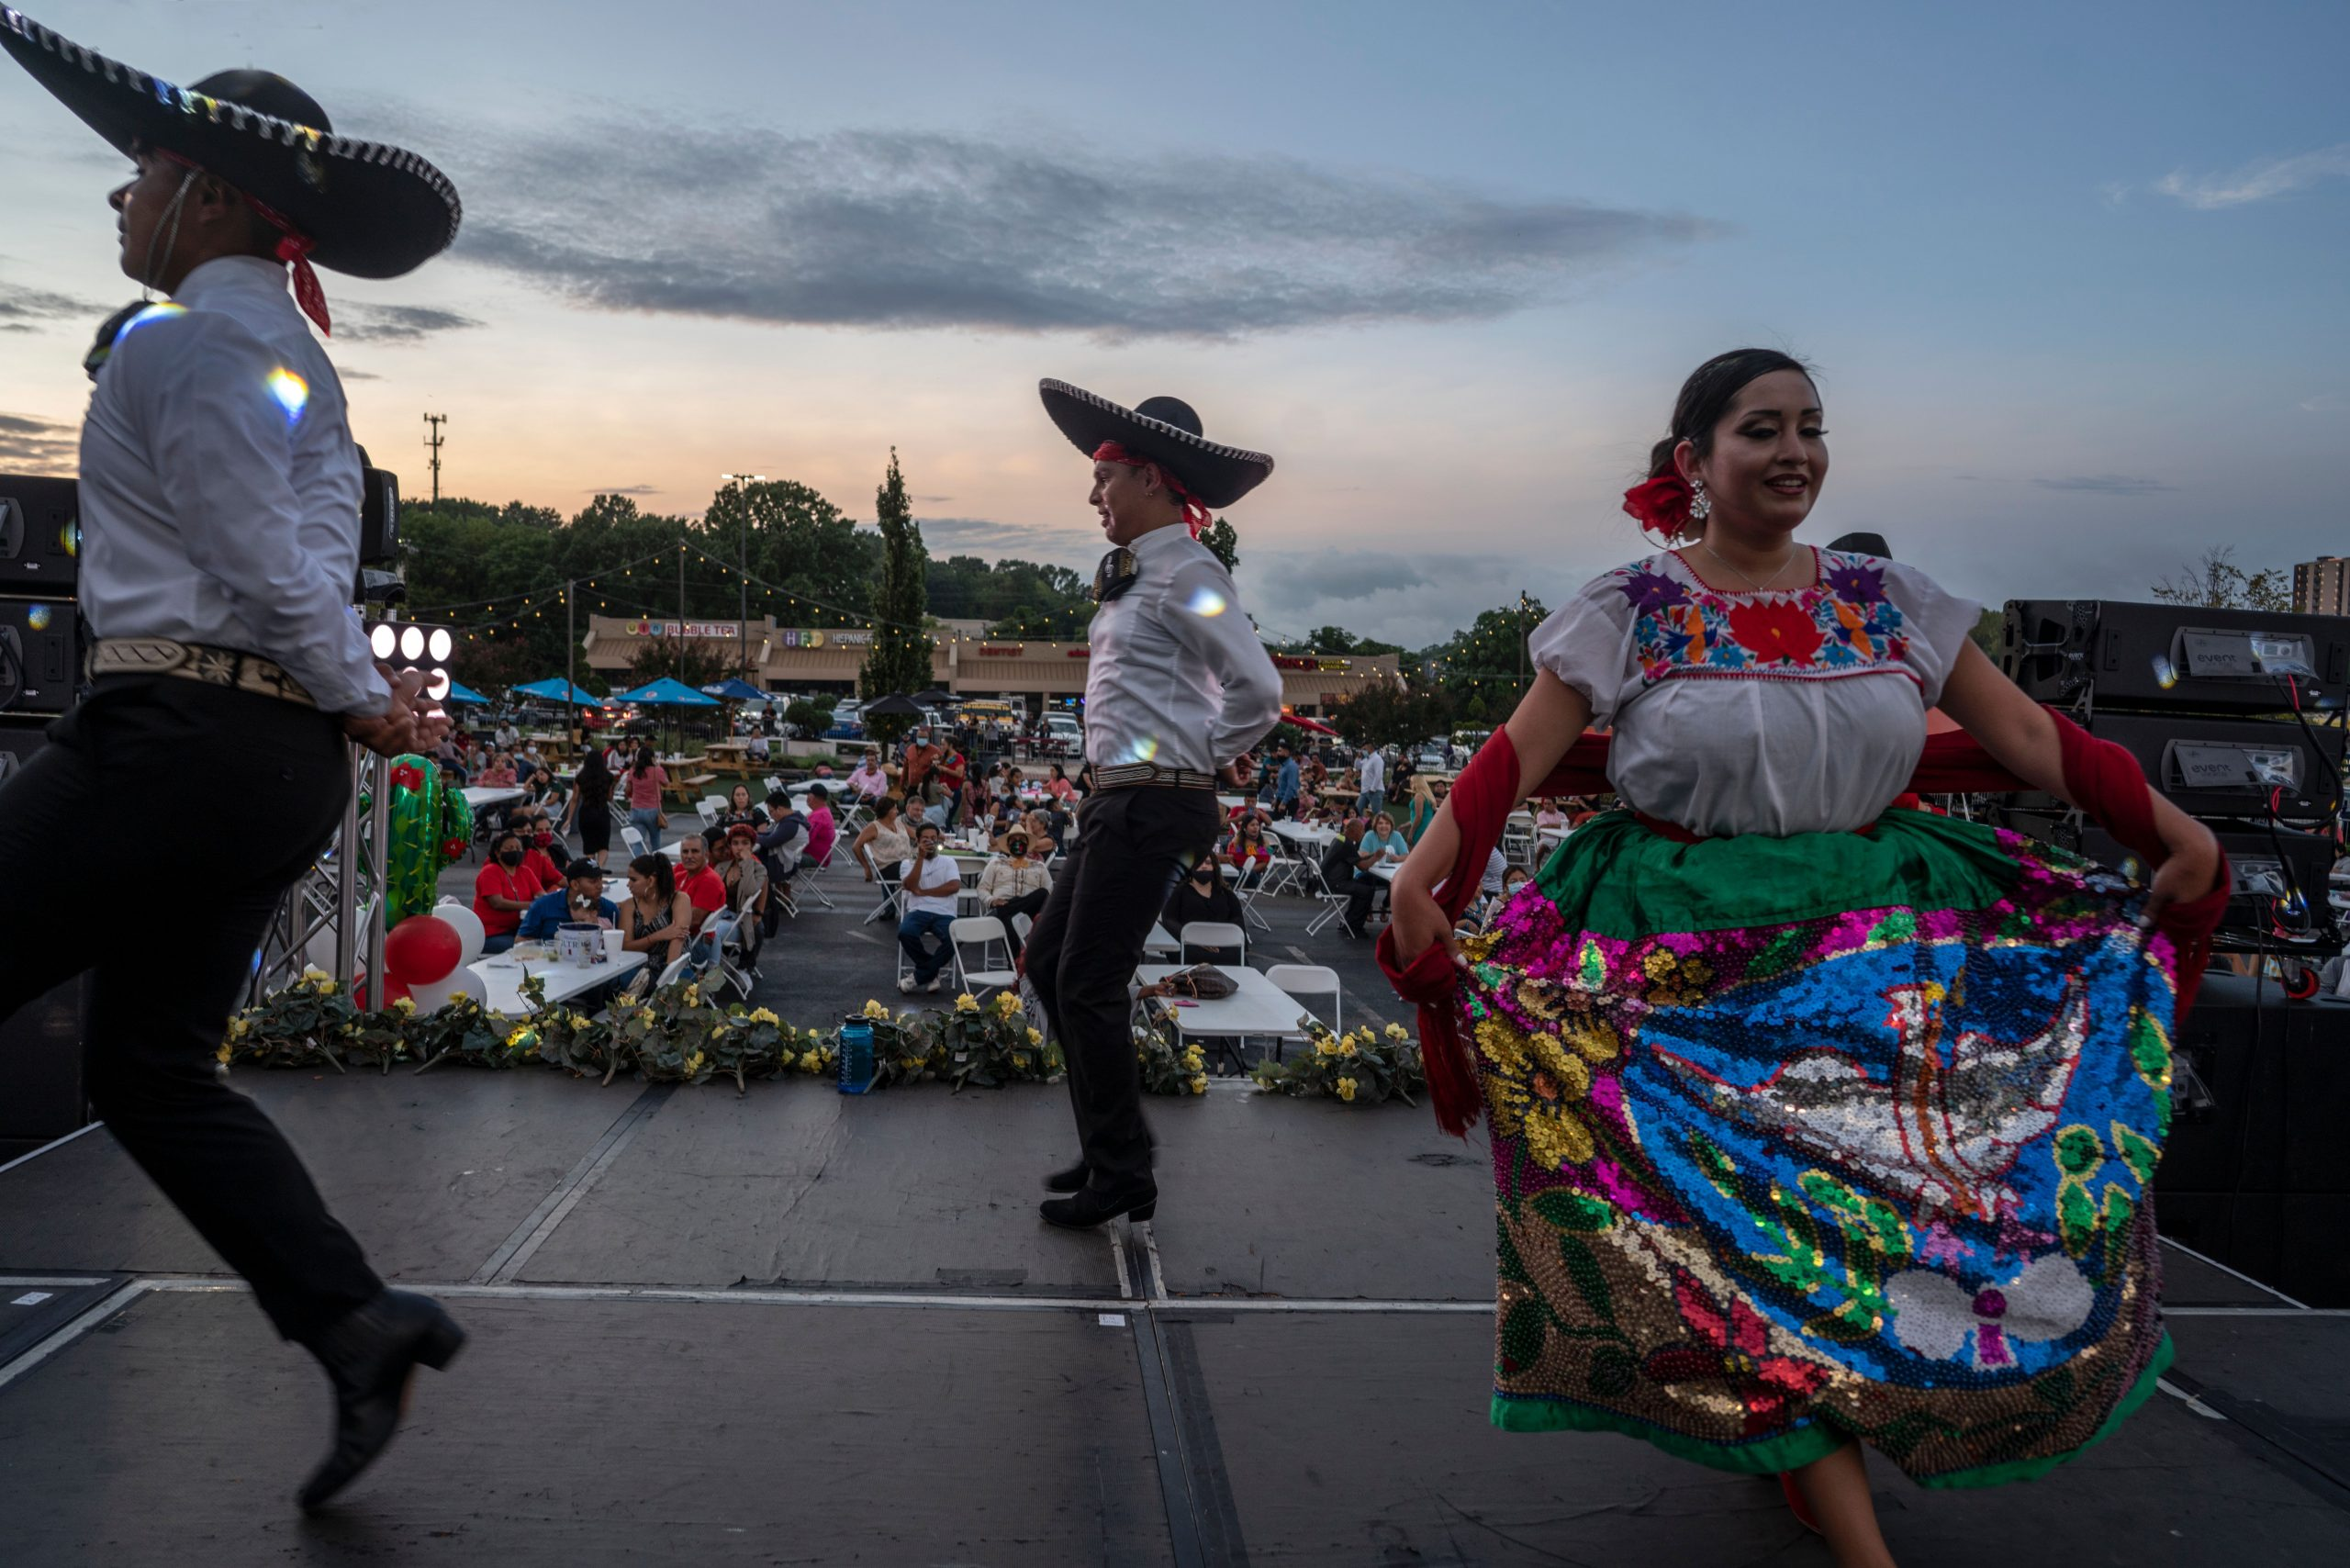 Members of Ballet Folklorico Sol de Mexico perform on the outdoor stage Mexican independence day at Plaza Mariachi.(Photo: John Partipilo)